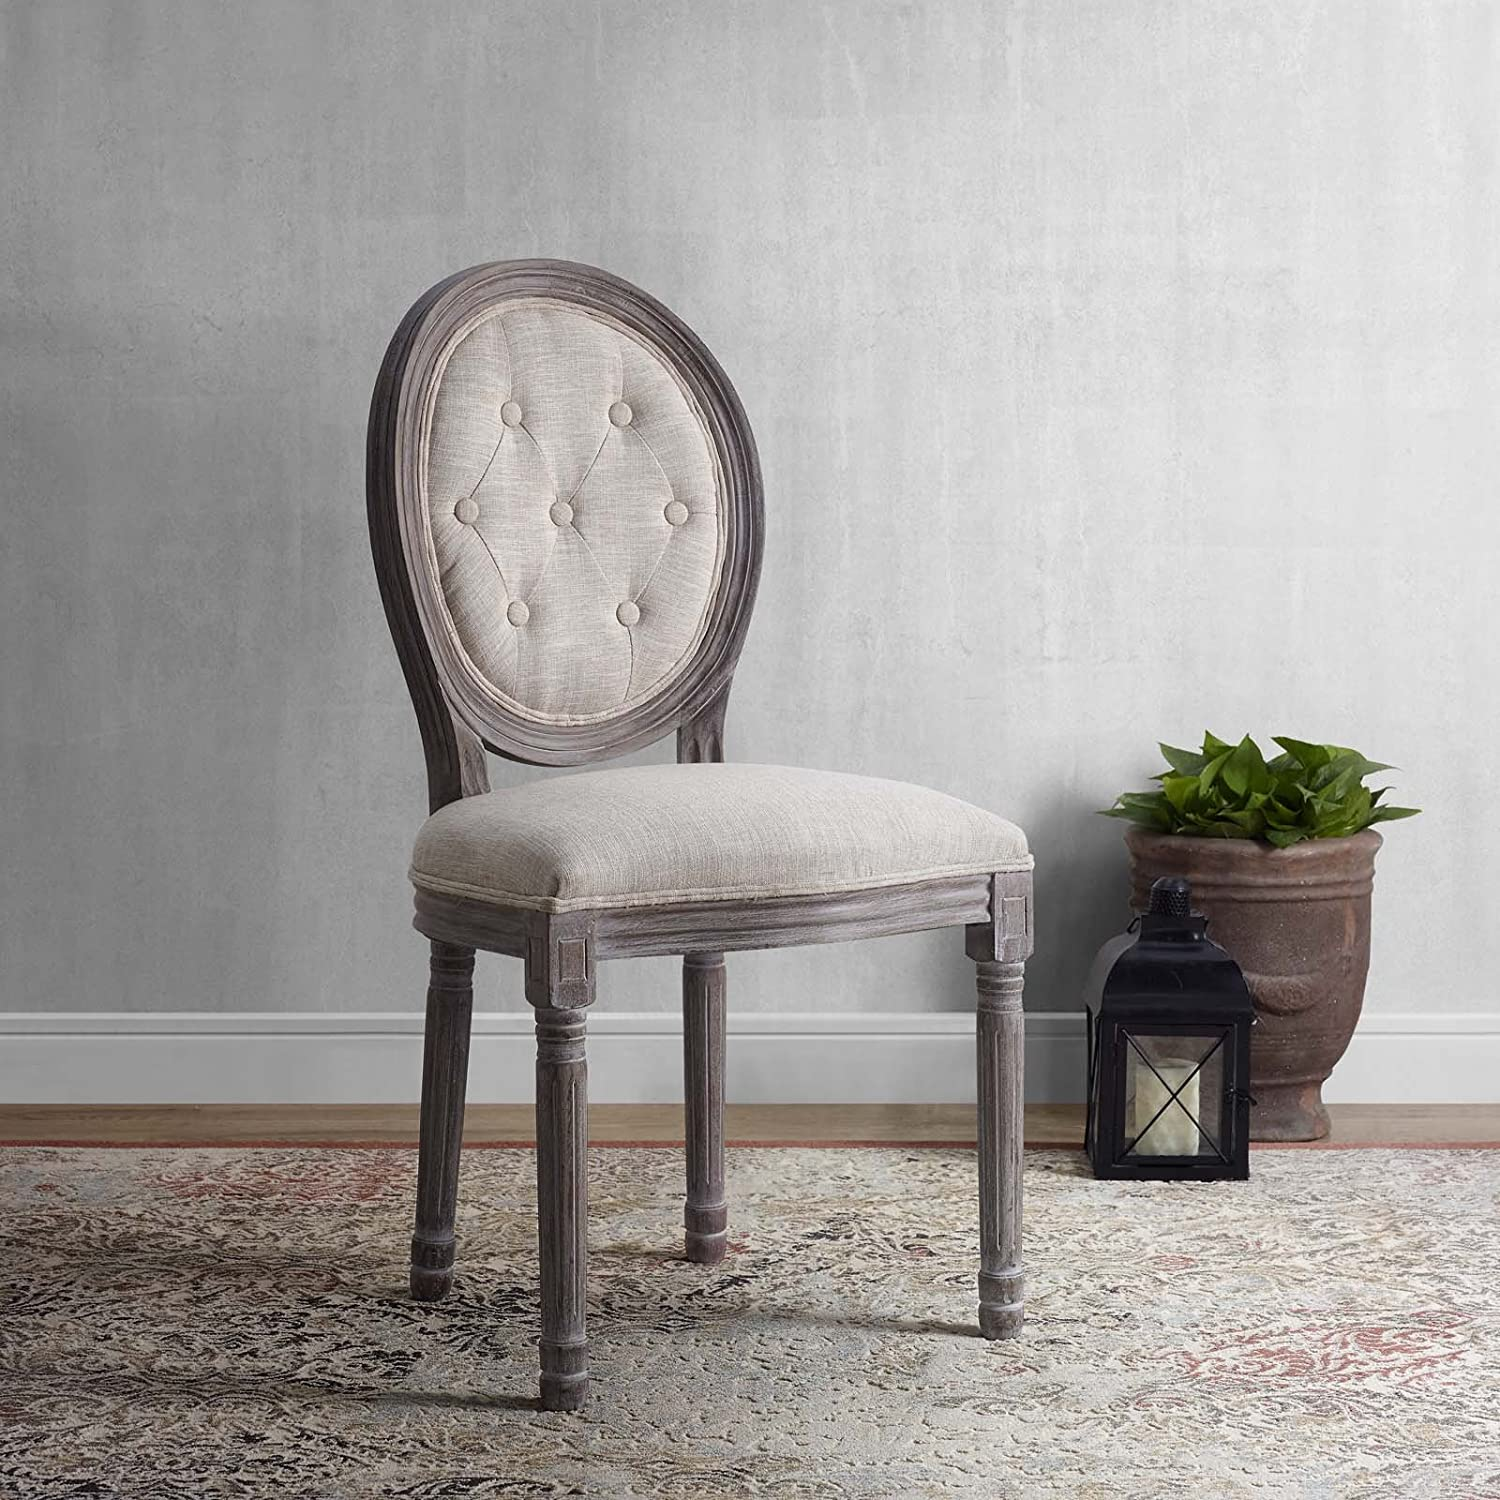 Modway Arise French Vintage Tufted Upholstered Fabric Weathered Wood Kitchen and Dining Room Side Chair in Beige – Fully Assembled